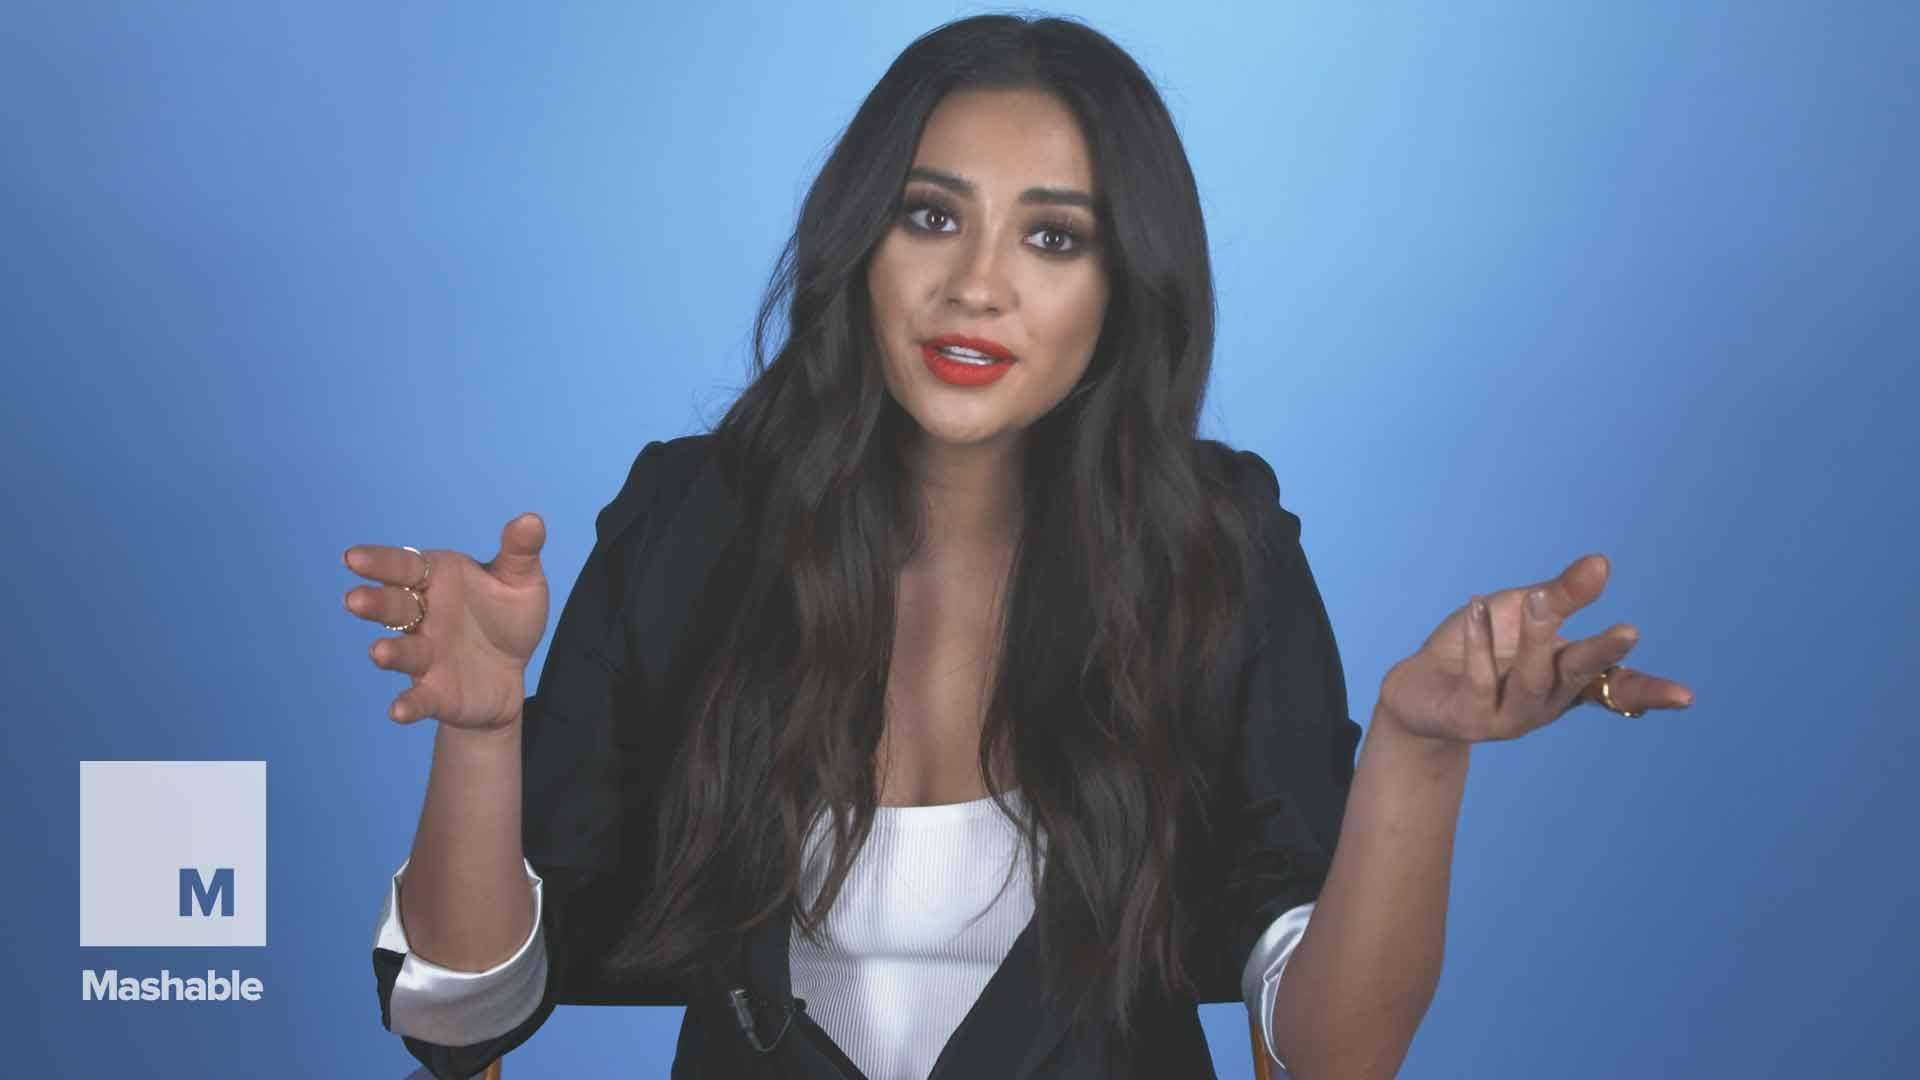 Shay Mitchell's top 11 pro tips to help moms (continue to) rule social media